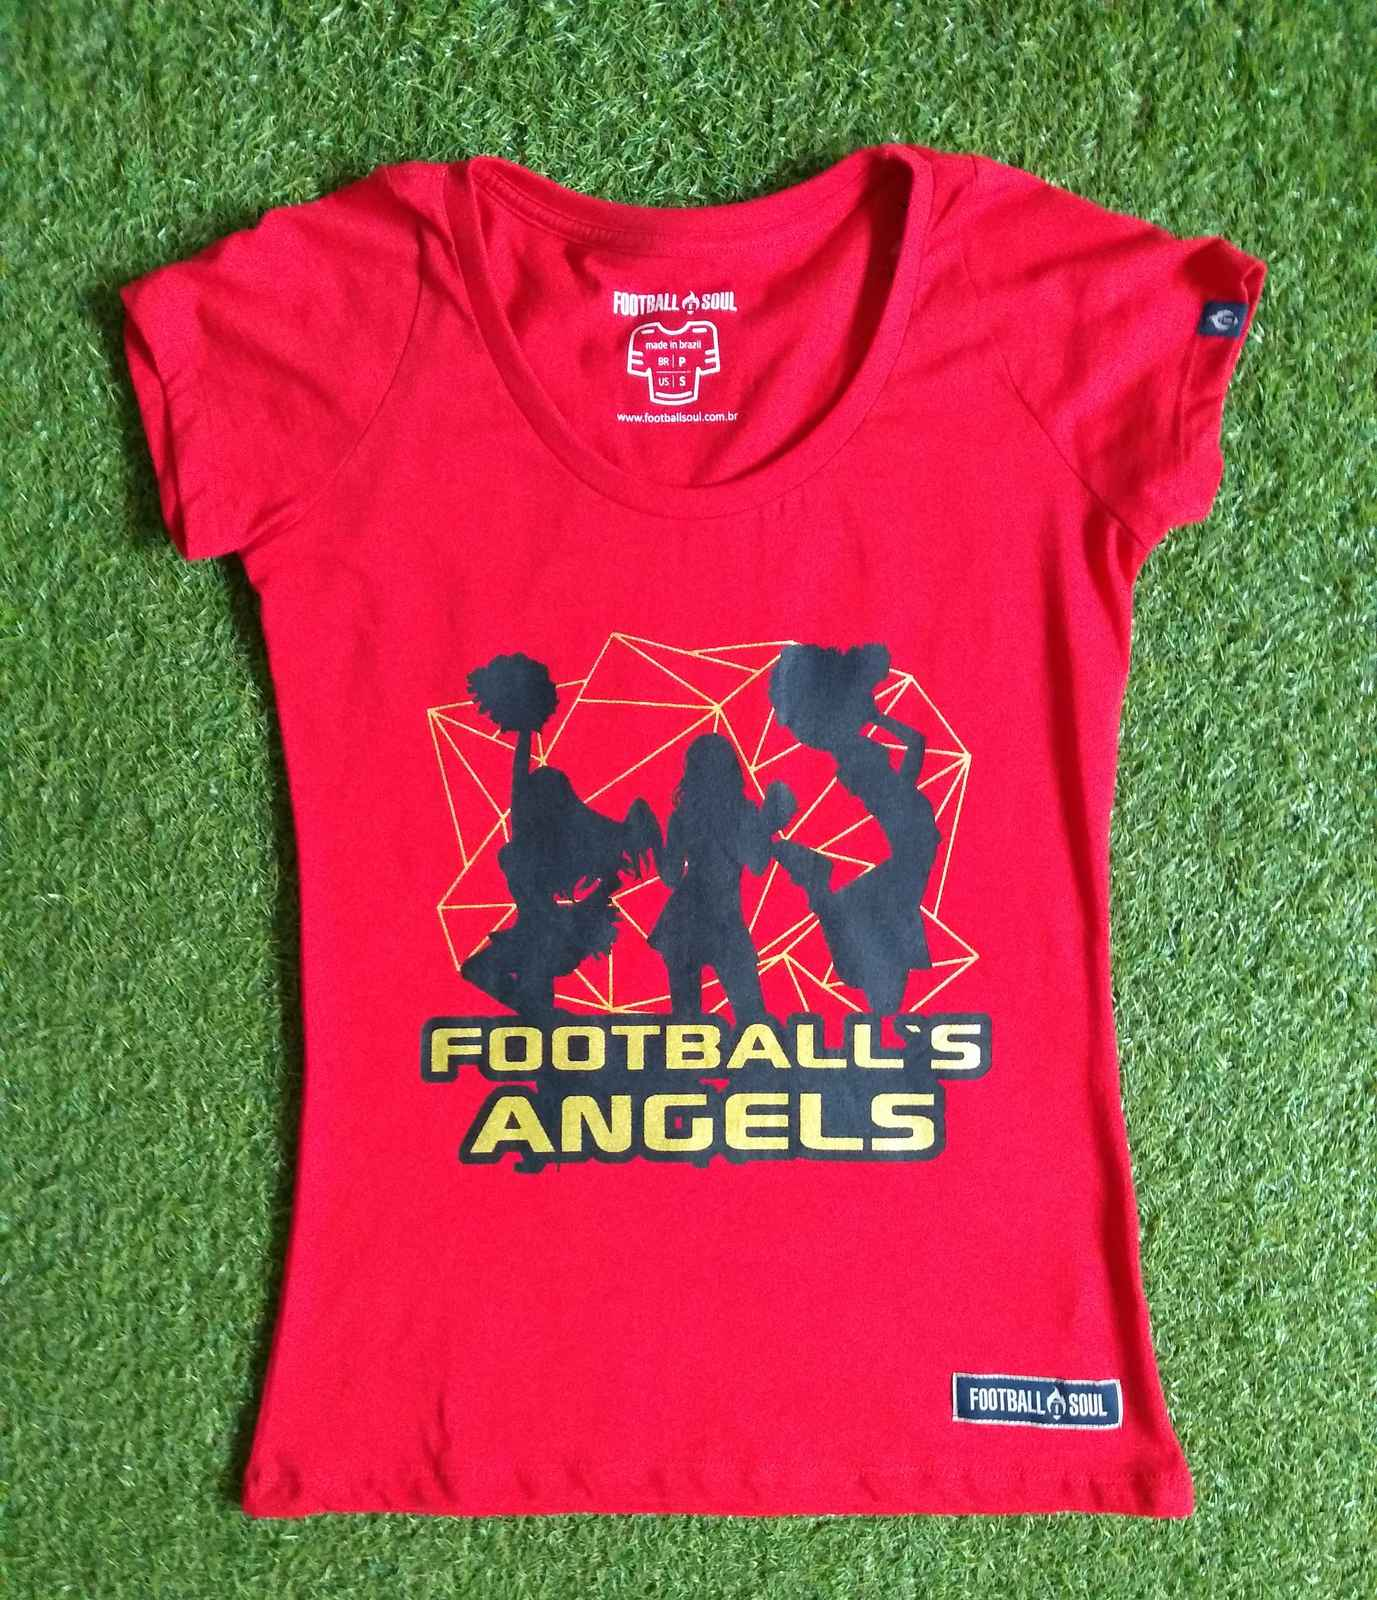 CAMISETA FOOTBALL ANGEL'S RED FEM